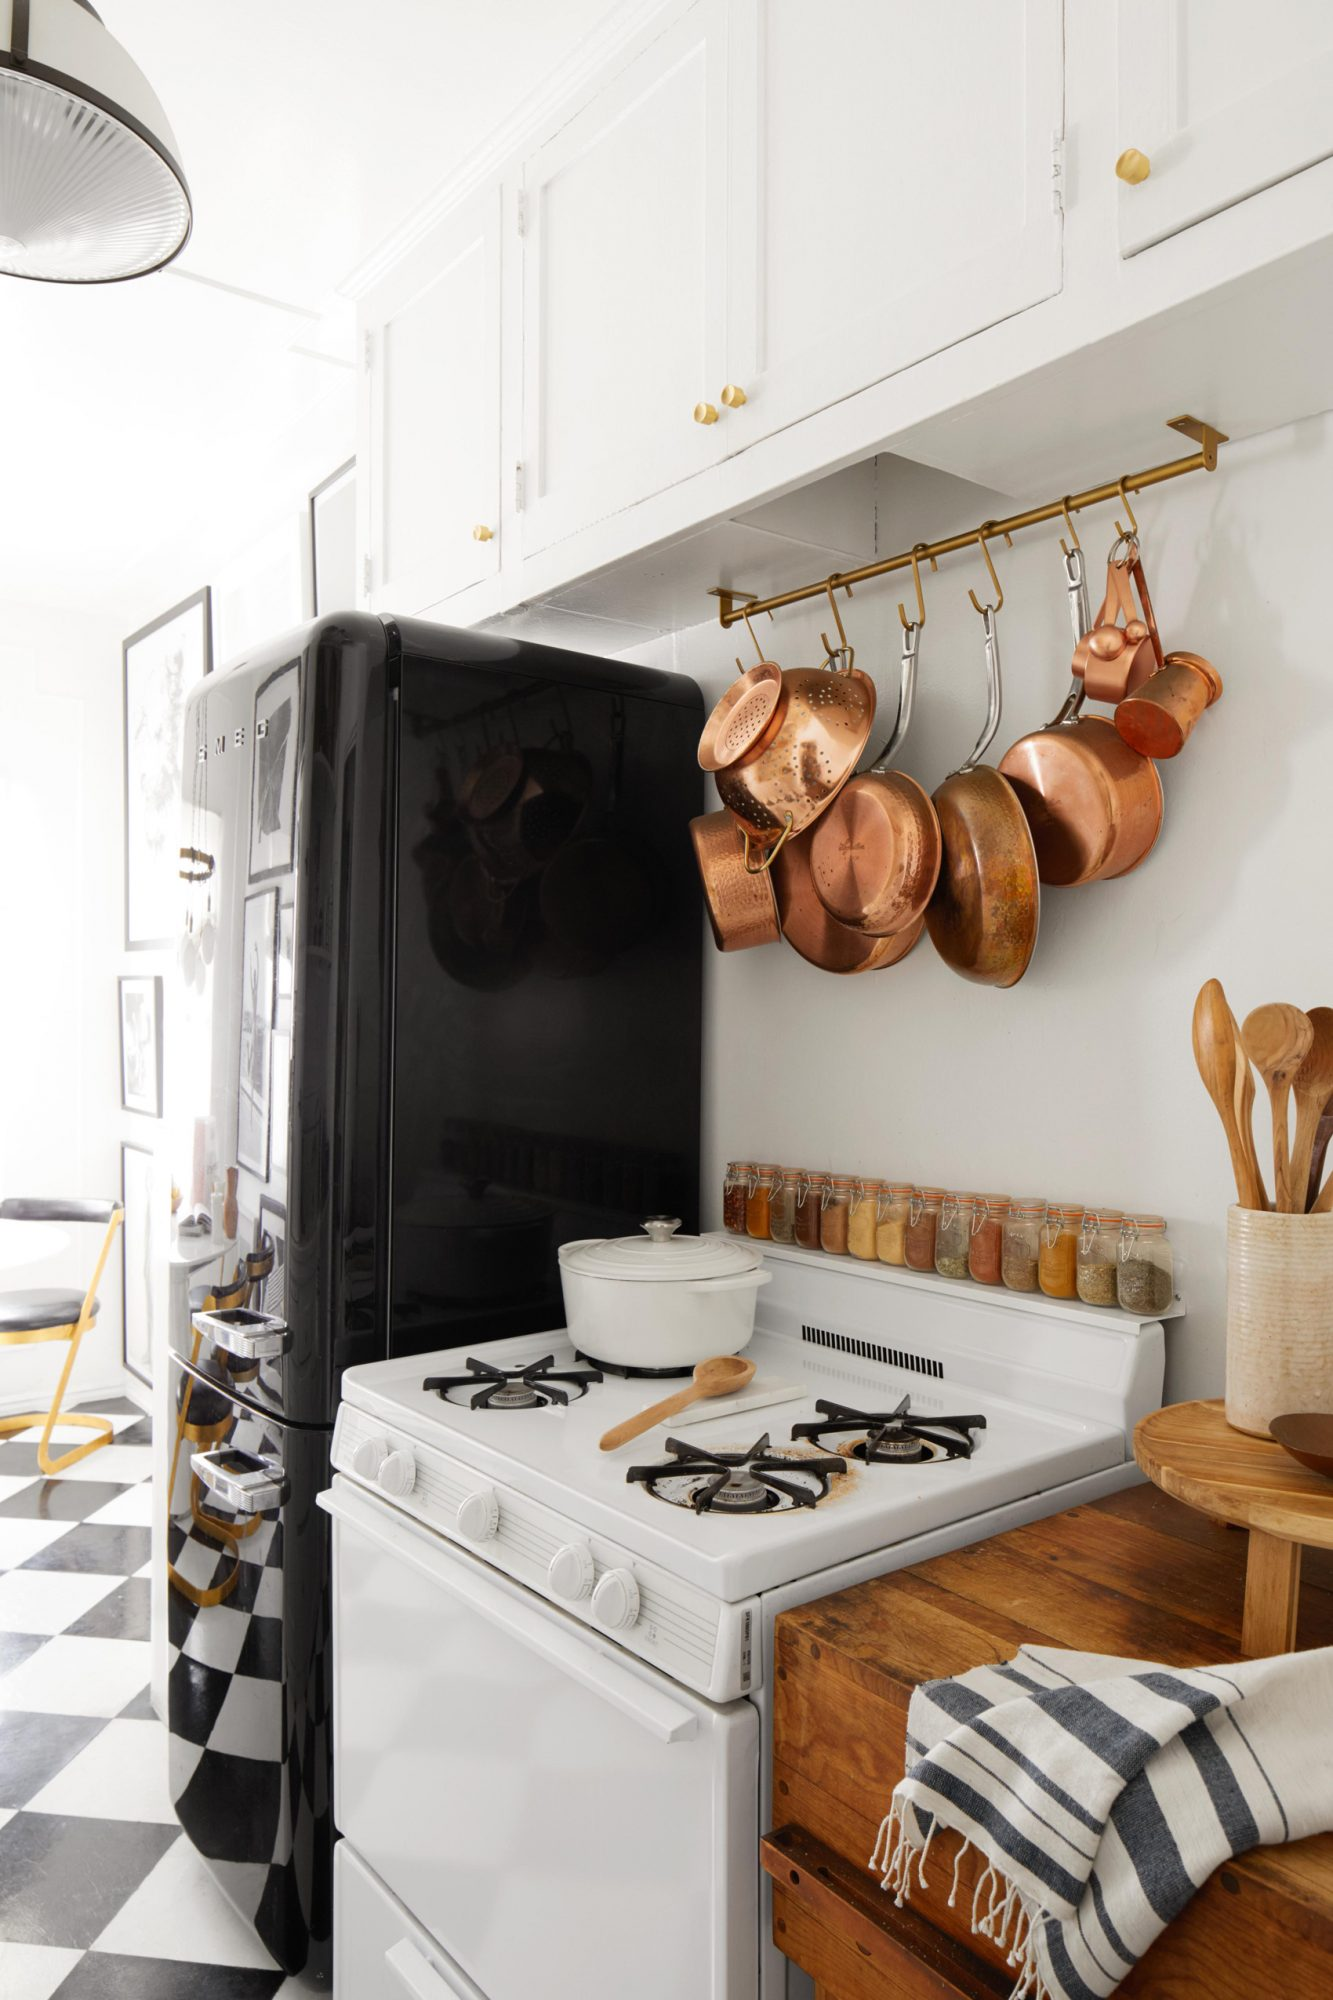 kitchen with white stove black refrigerator and copper dishes hanging